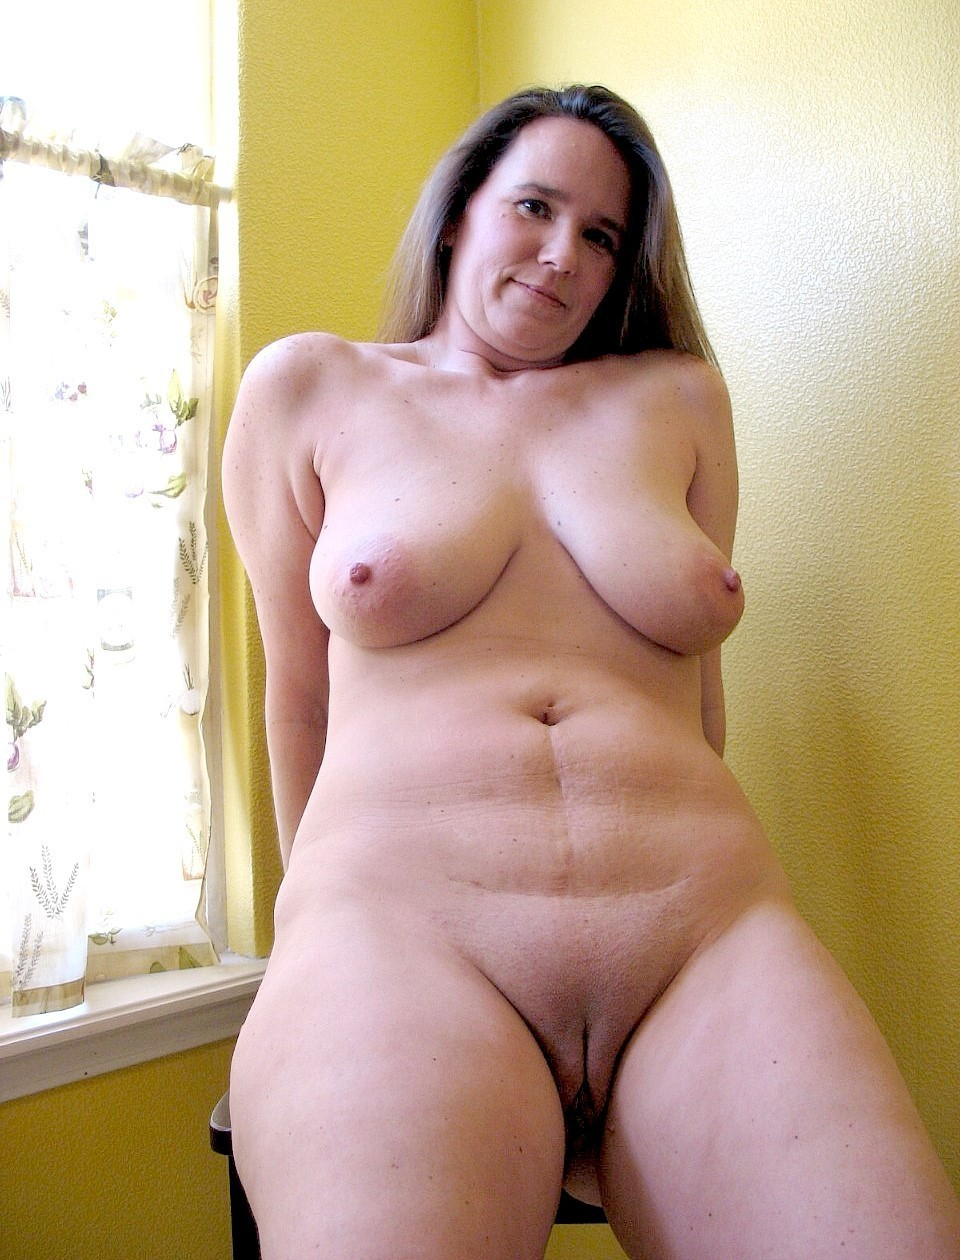 Chubby naked old woman — pic 15